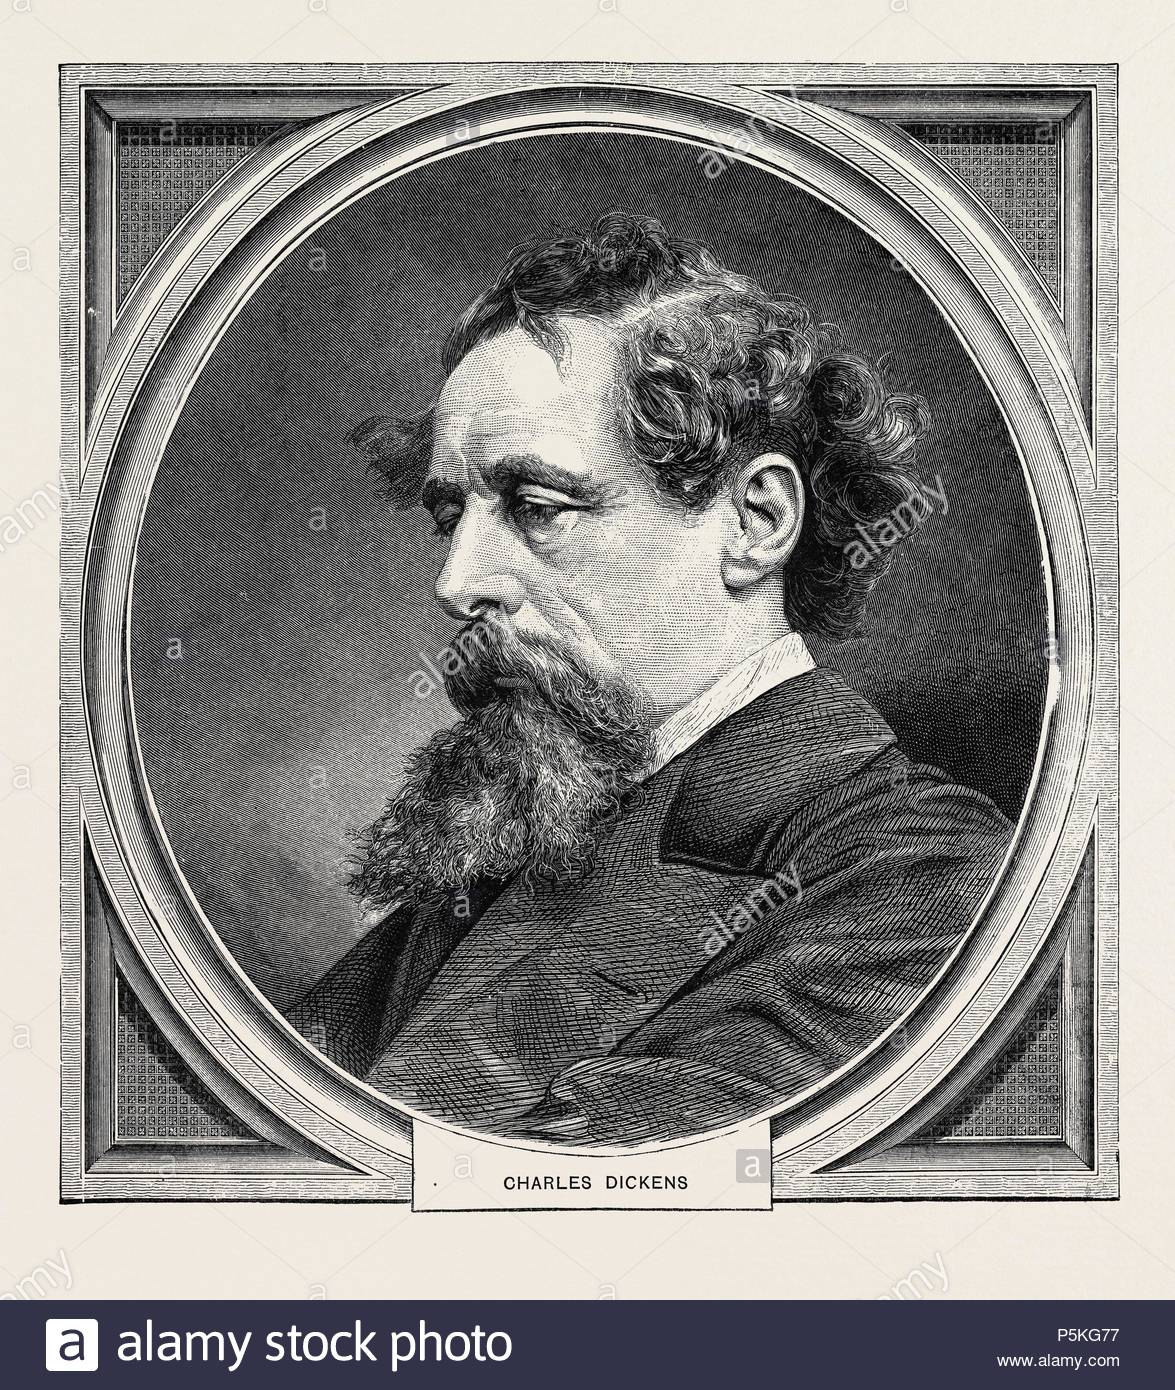 CHARLES DICKENS, BORN AT PORTSMOUTH, 7 FEBRUARY, 1812; DIED AT GAD'S HILL, KENT, 9 JUNE, 1870. - Stock Image